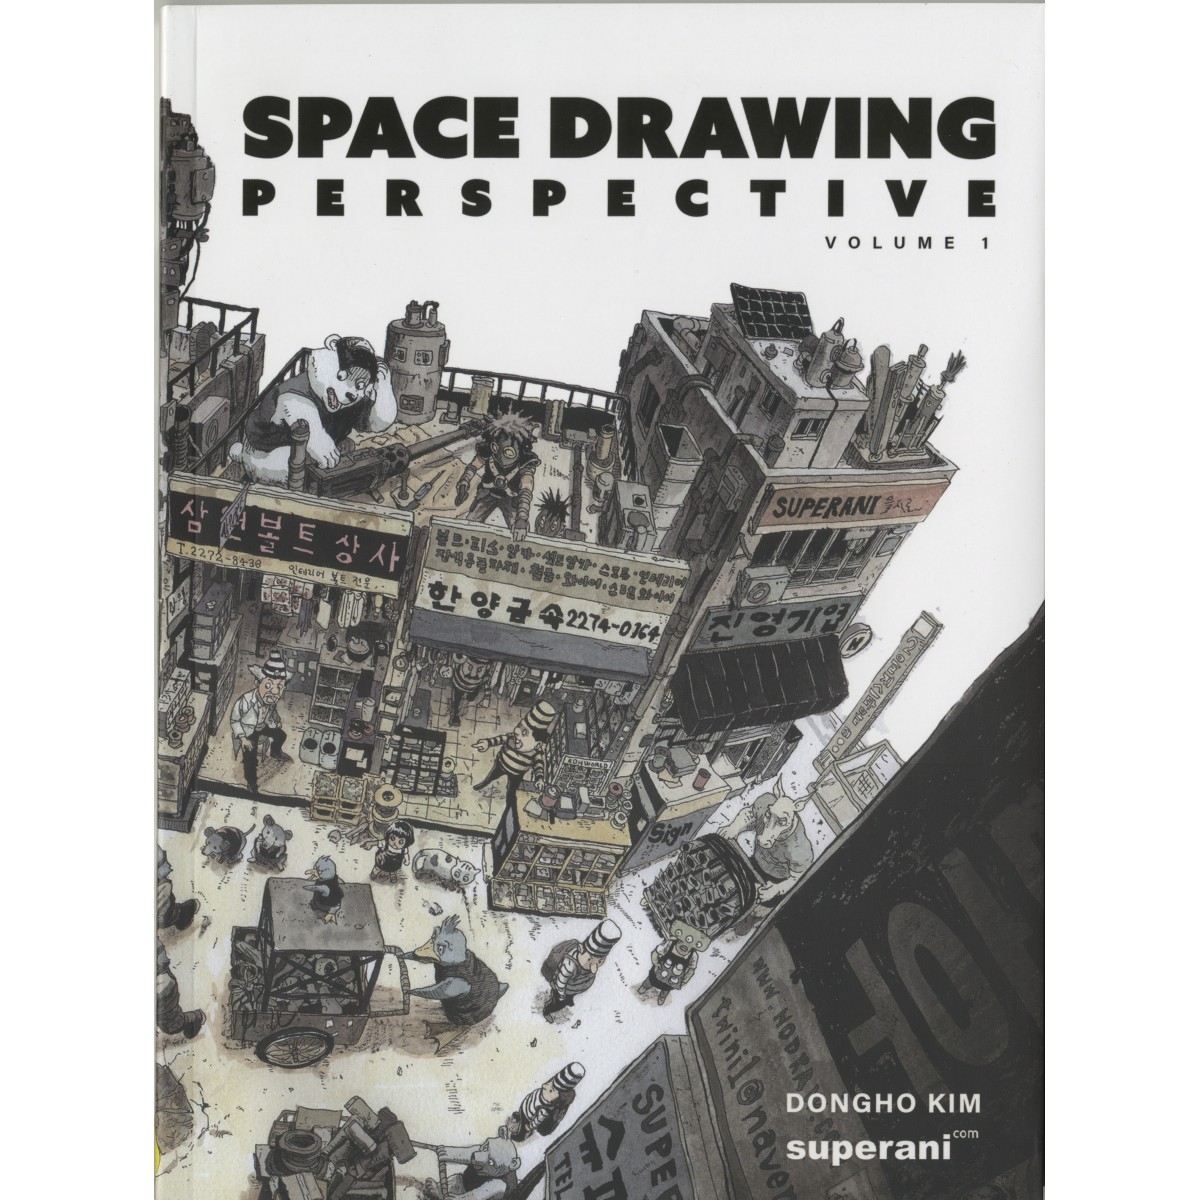 Dongho KIM - Space Drawing: Perspective